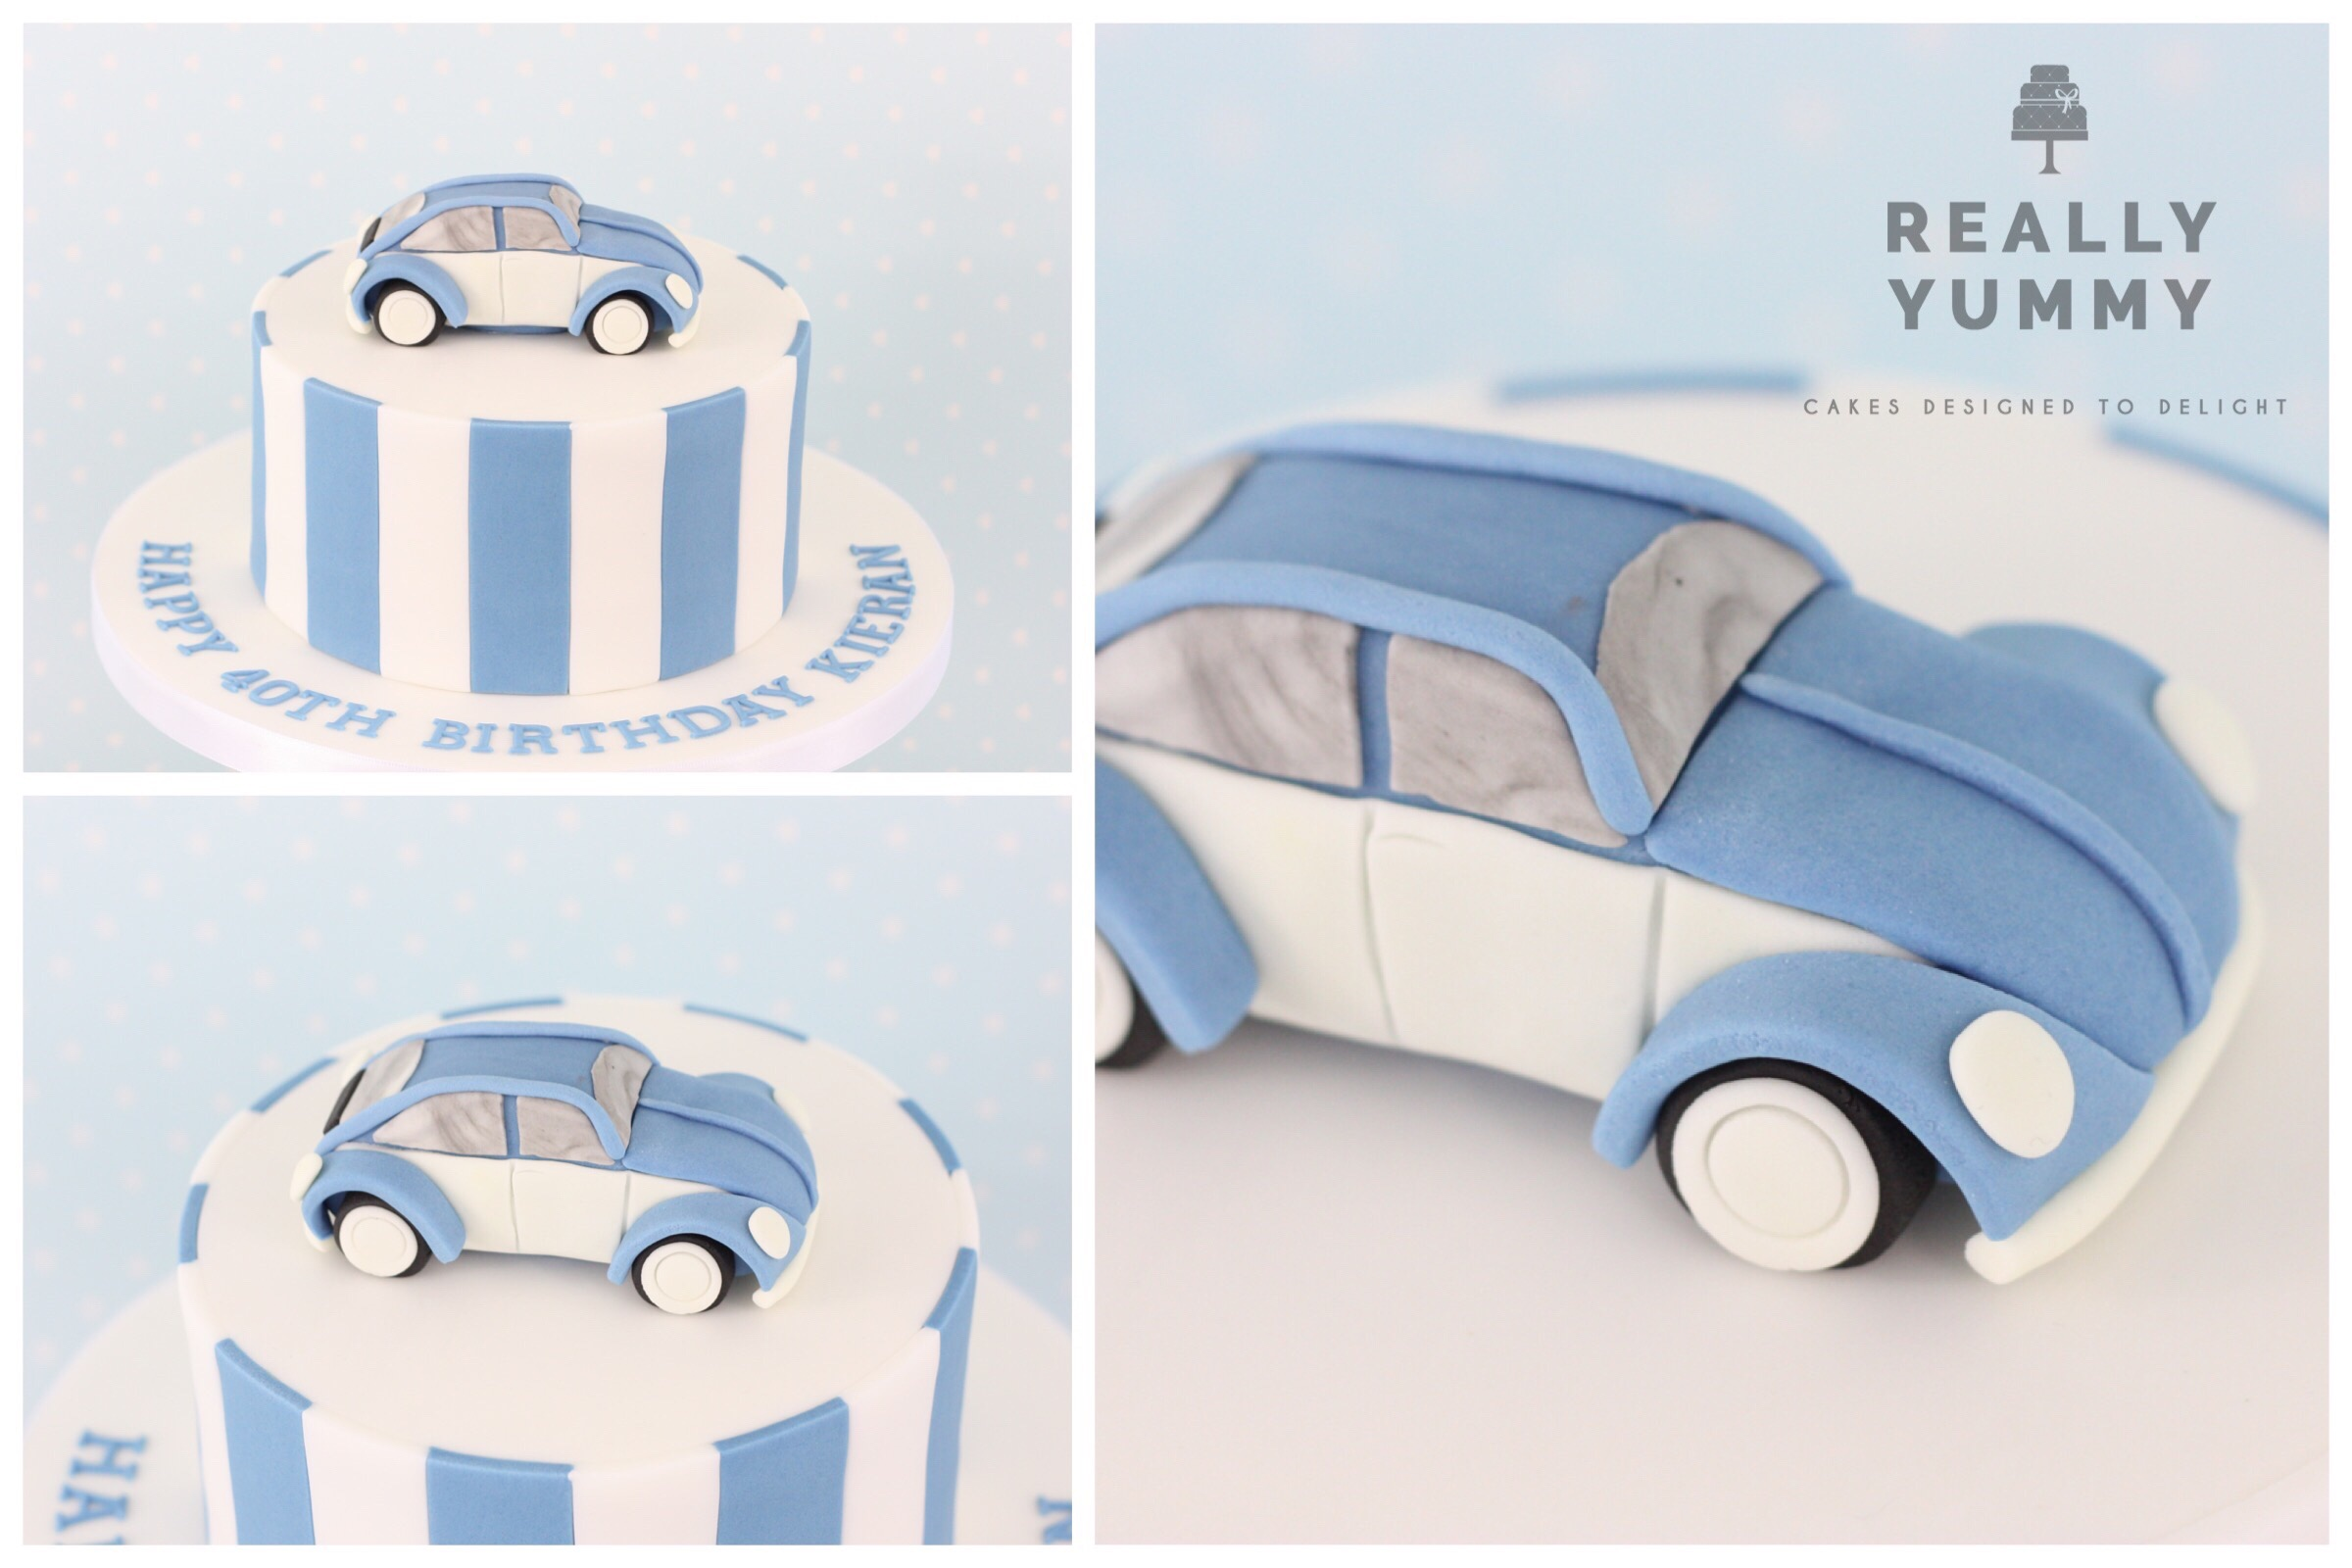 VW Beetle cake, in blue and white